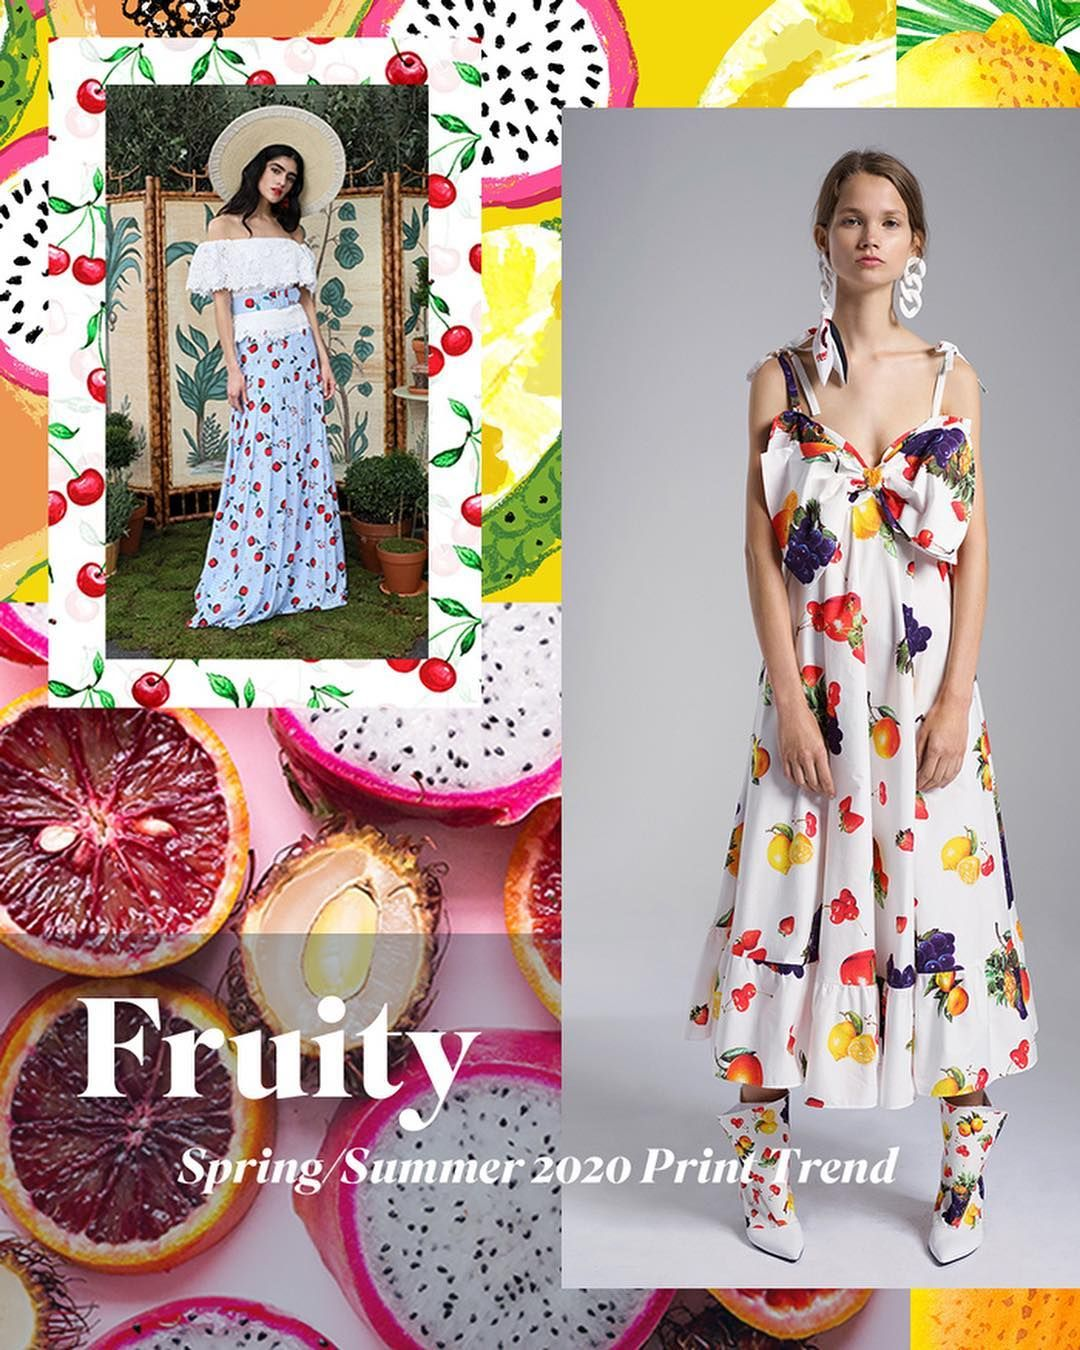 New Spring/Summer 2020 Print Trend 'Fruity' is now live on